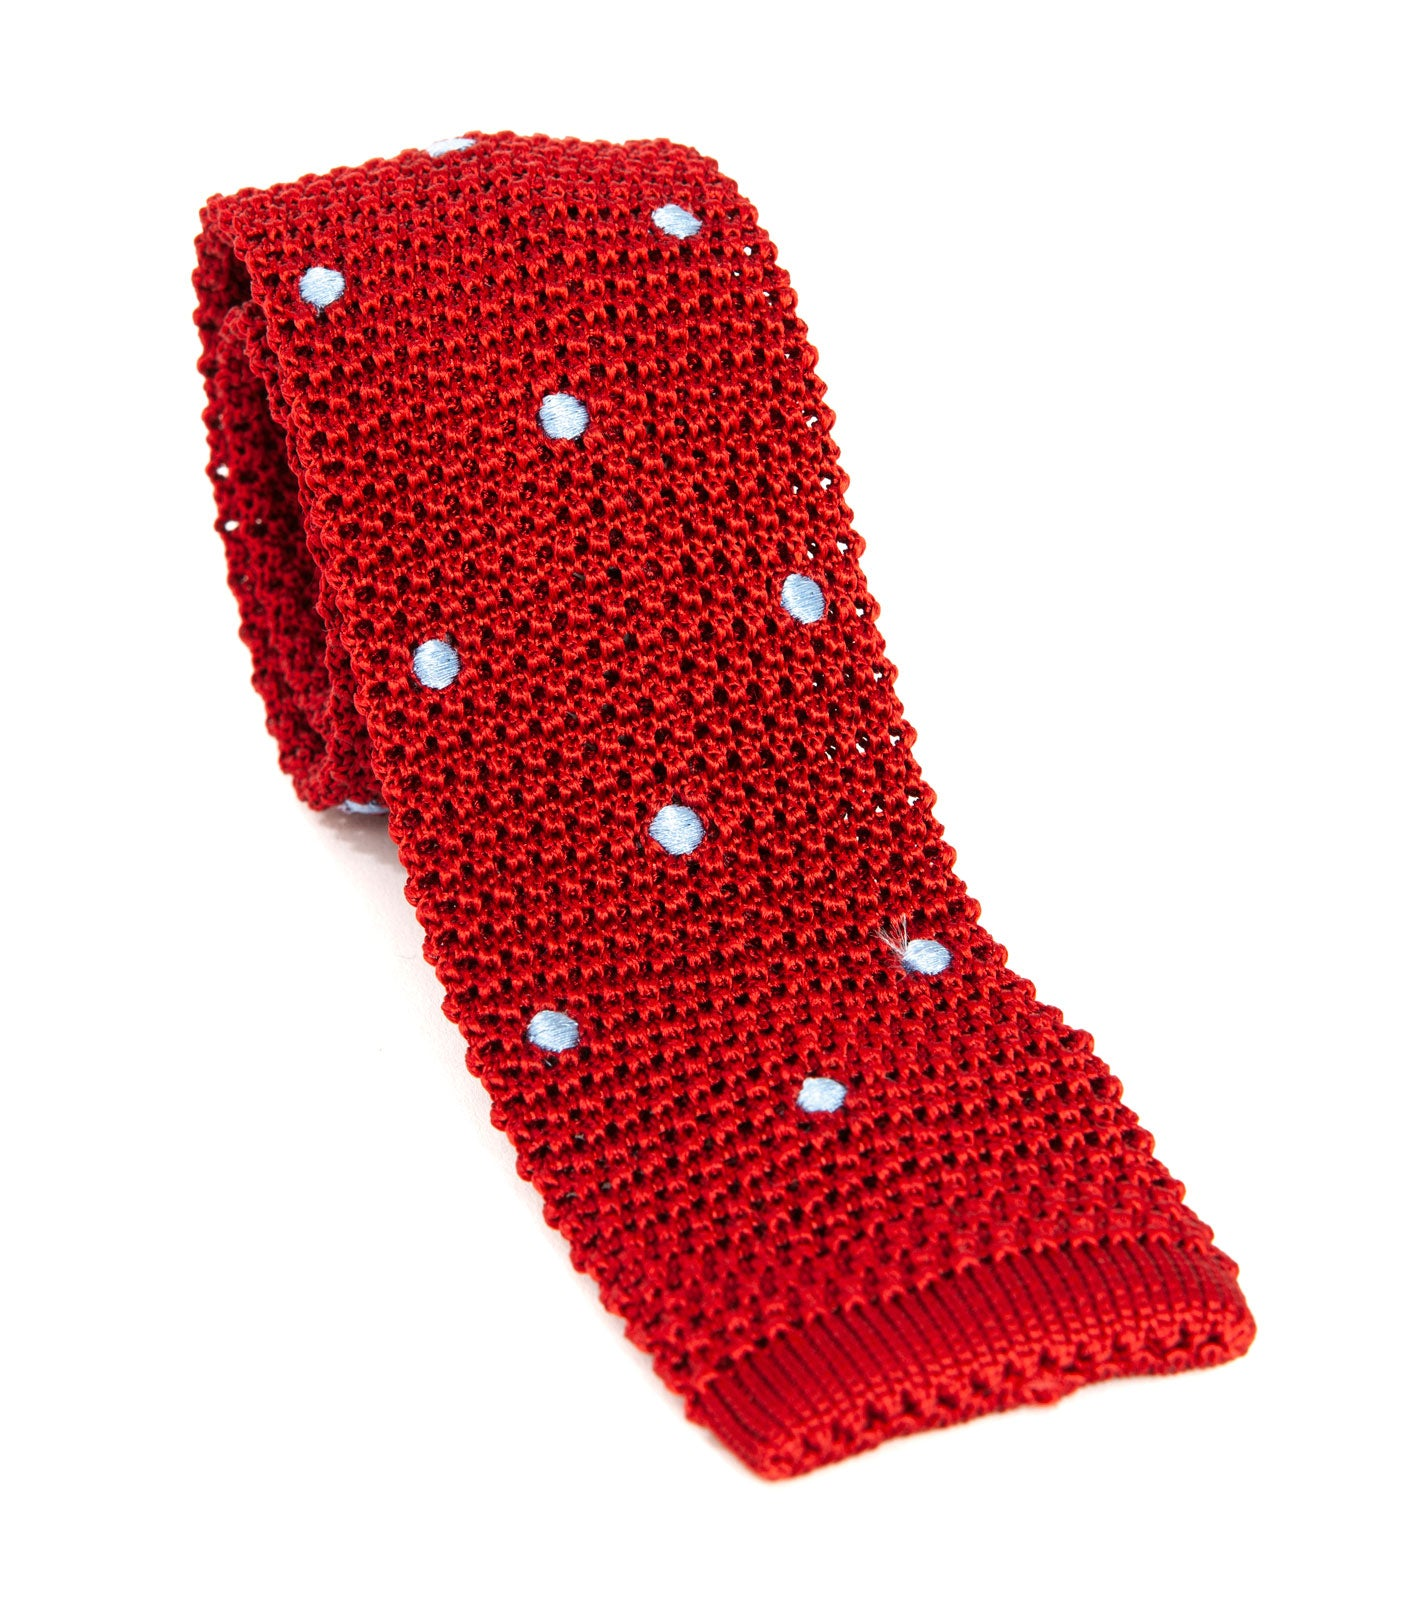 Luxury silk knitted tie designed and made exclusively for Regent. Expertly woven, with a blade width of approximately 5.5cm, this blue-spotted rich red tie from Regent is a unique, playful way to smarten up an outfit.